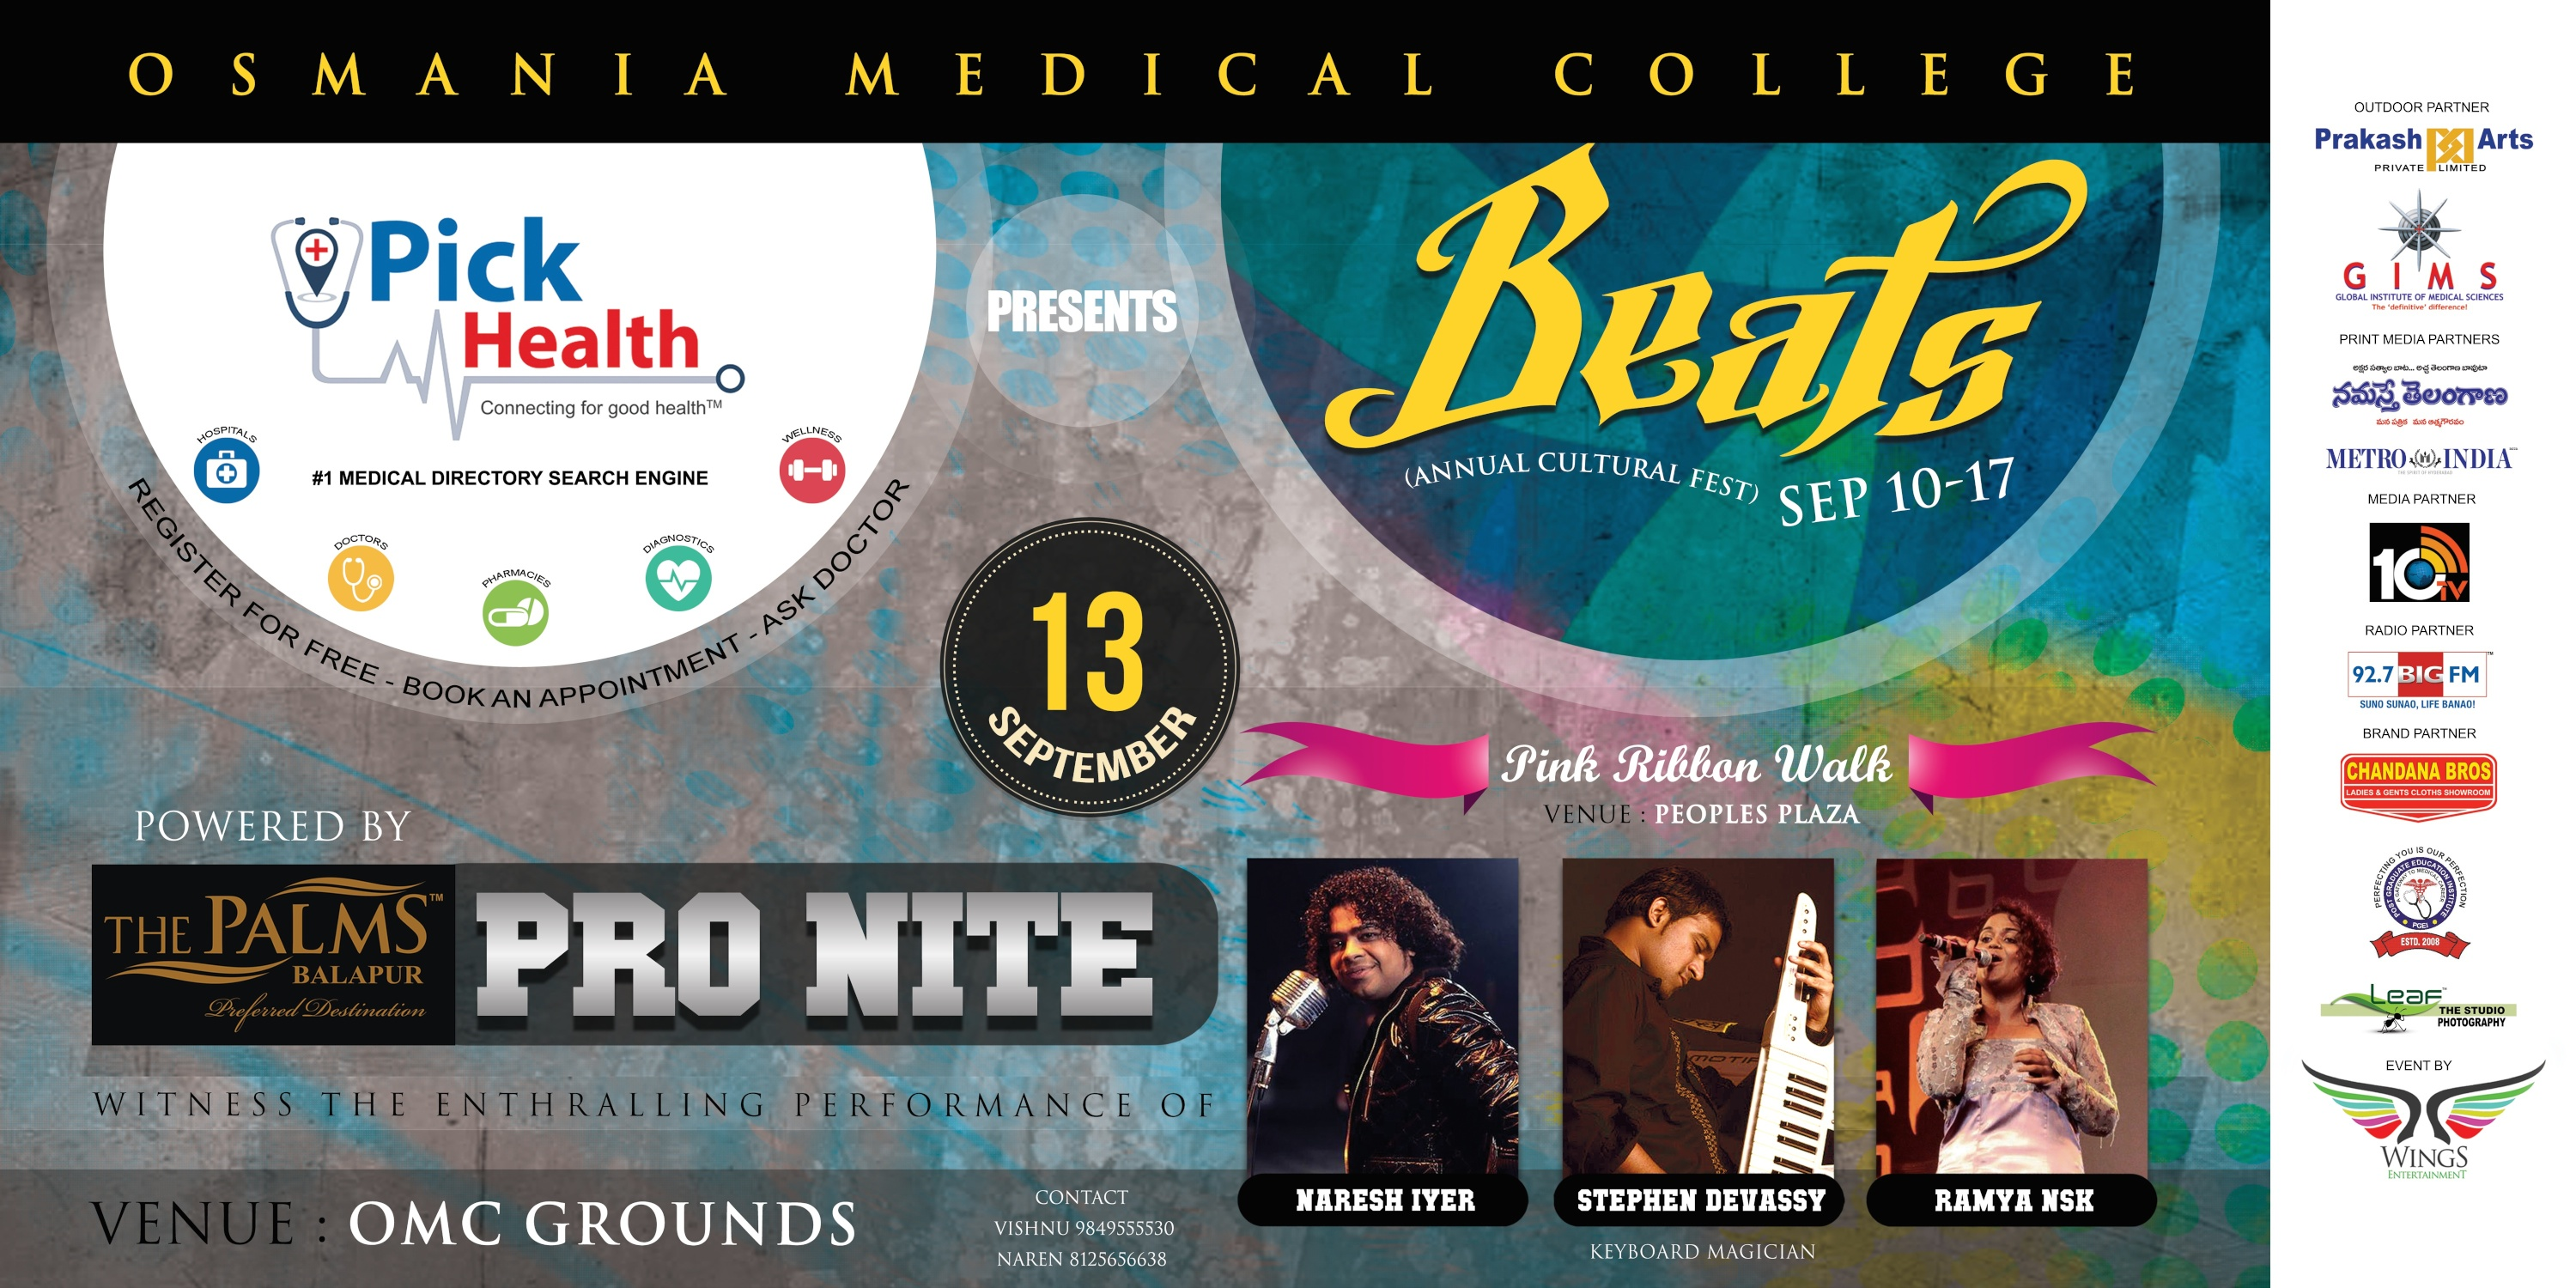 Book Online Tickets for BEATS-2014 LIVE MUSIC CONCERT by NARESH , Hyderabad. Witness the enthalling performance of NARESH IYER,STEPHEN DEVASSY & RAMYA NSK along with equally proficient SOLID BANDVenue : Osmania medical college